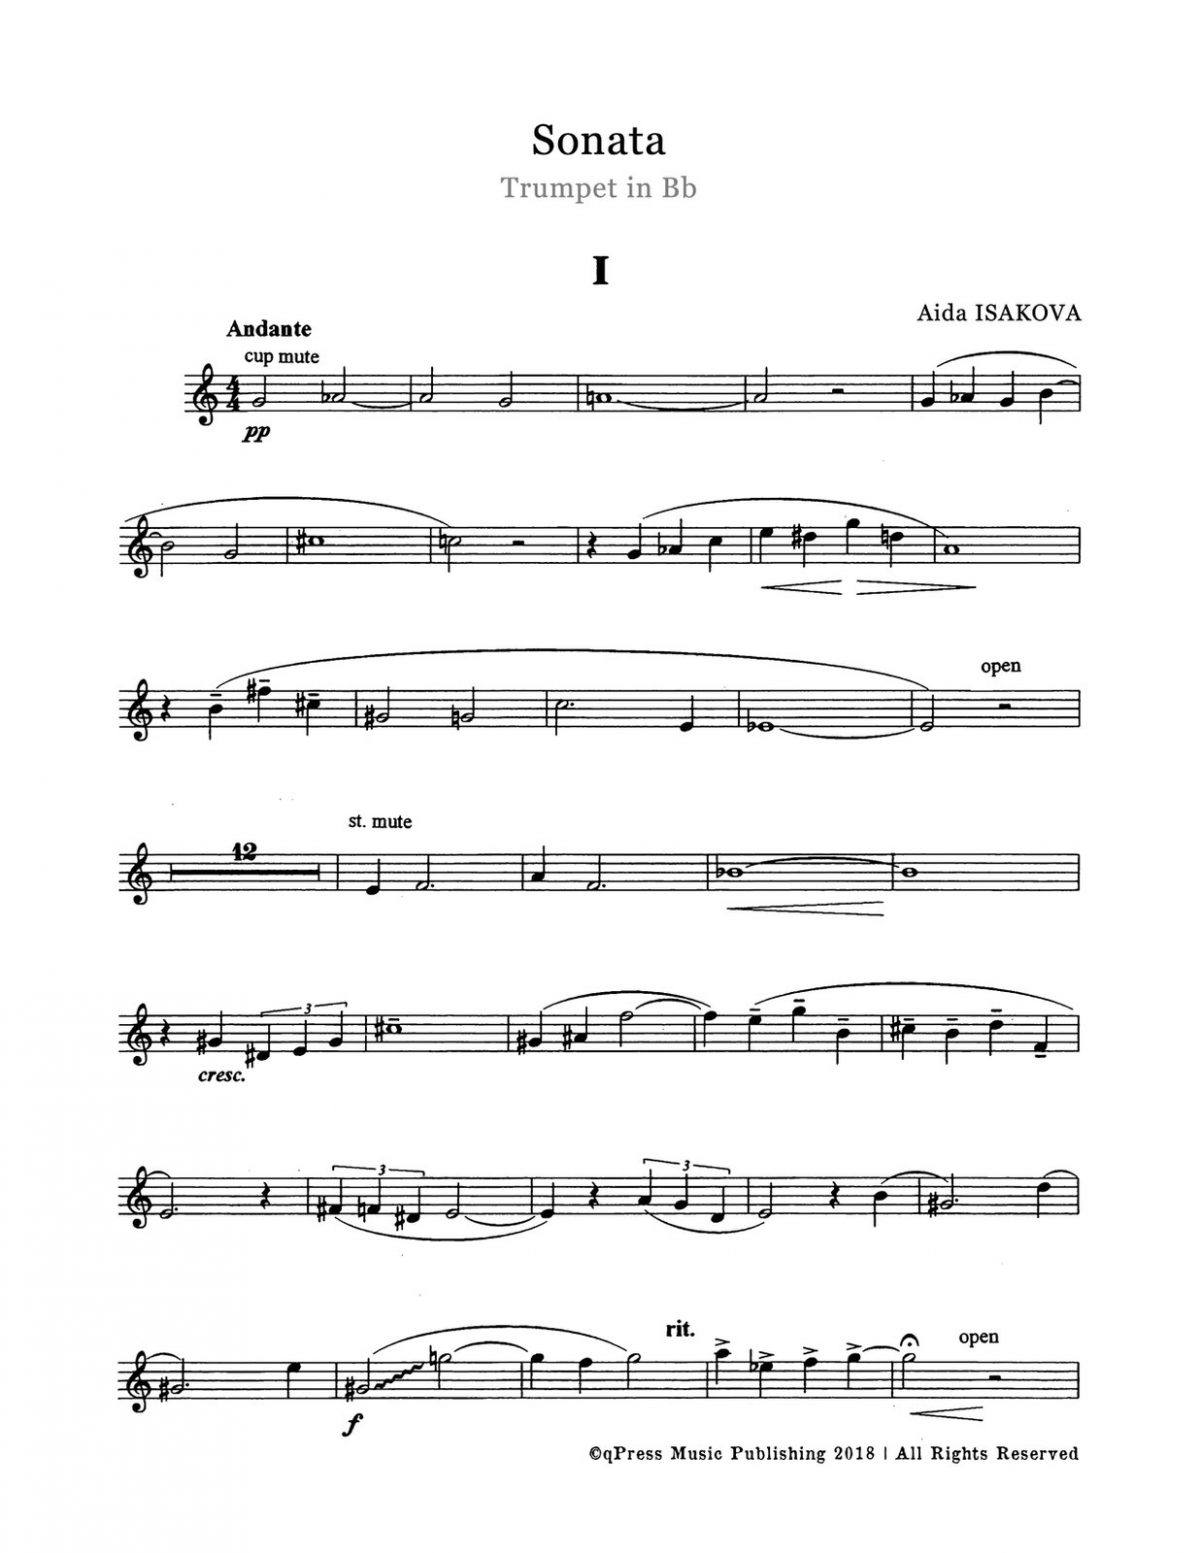 Isakova, Sonata (Score and Part)-p03